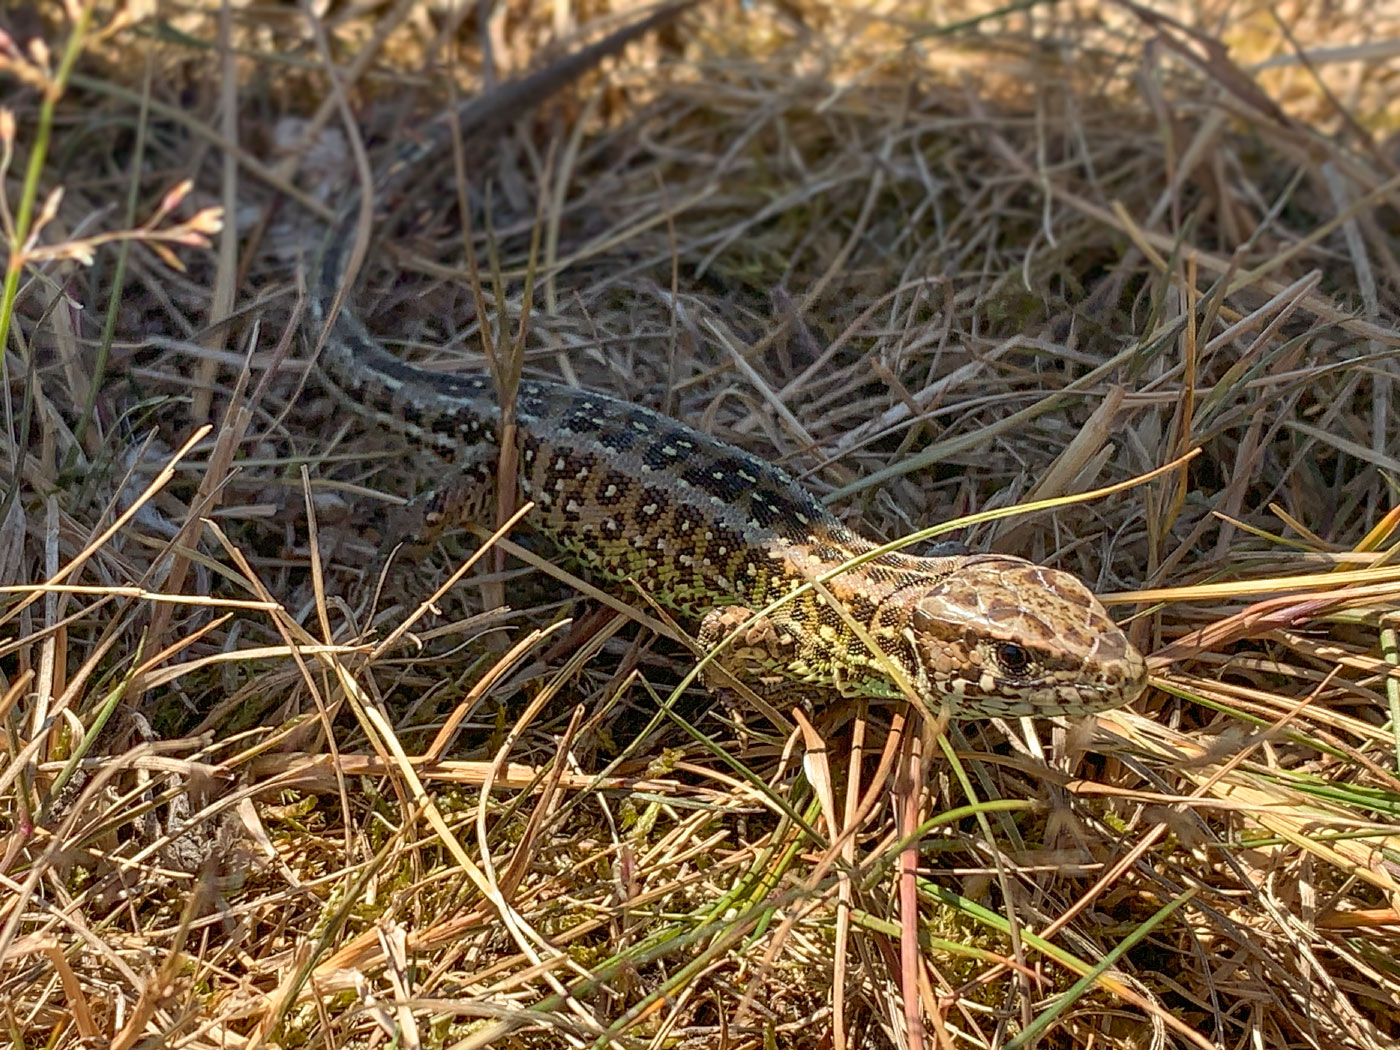 A common lizard basking in the sun